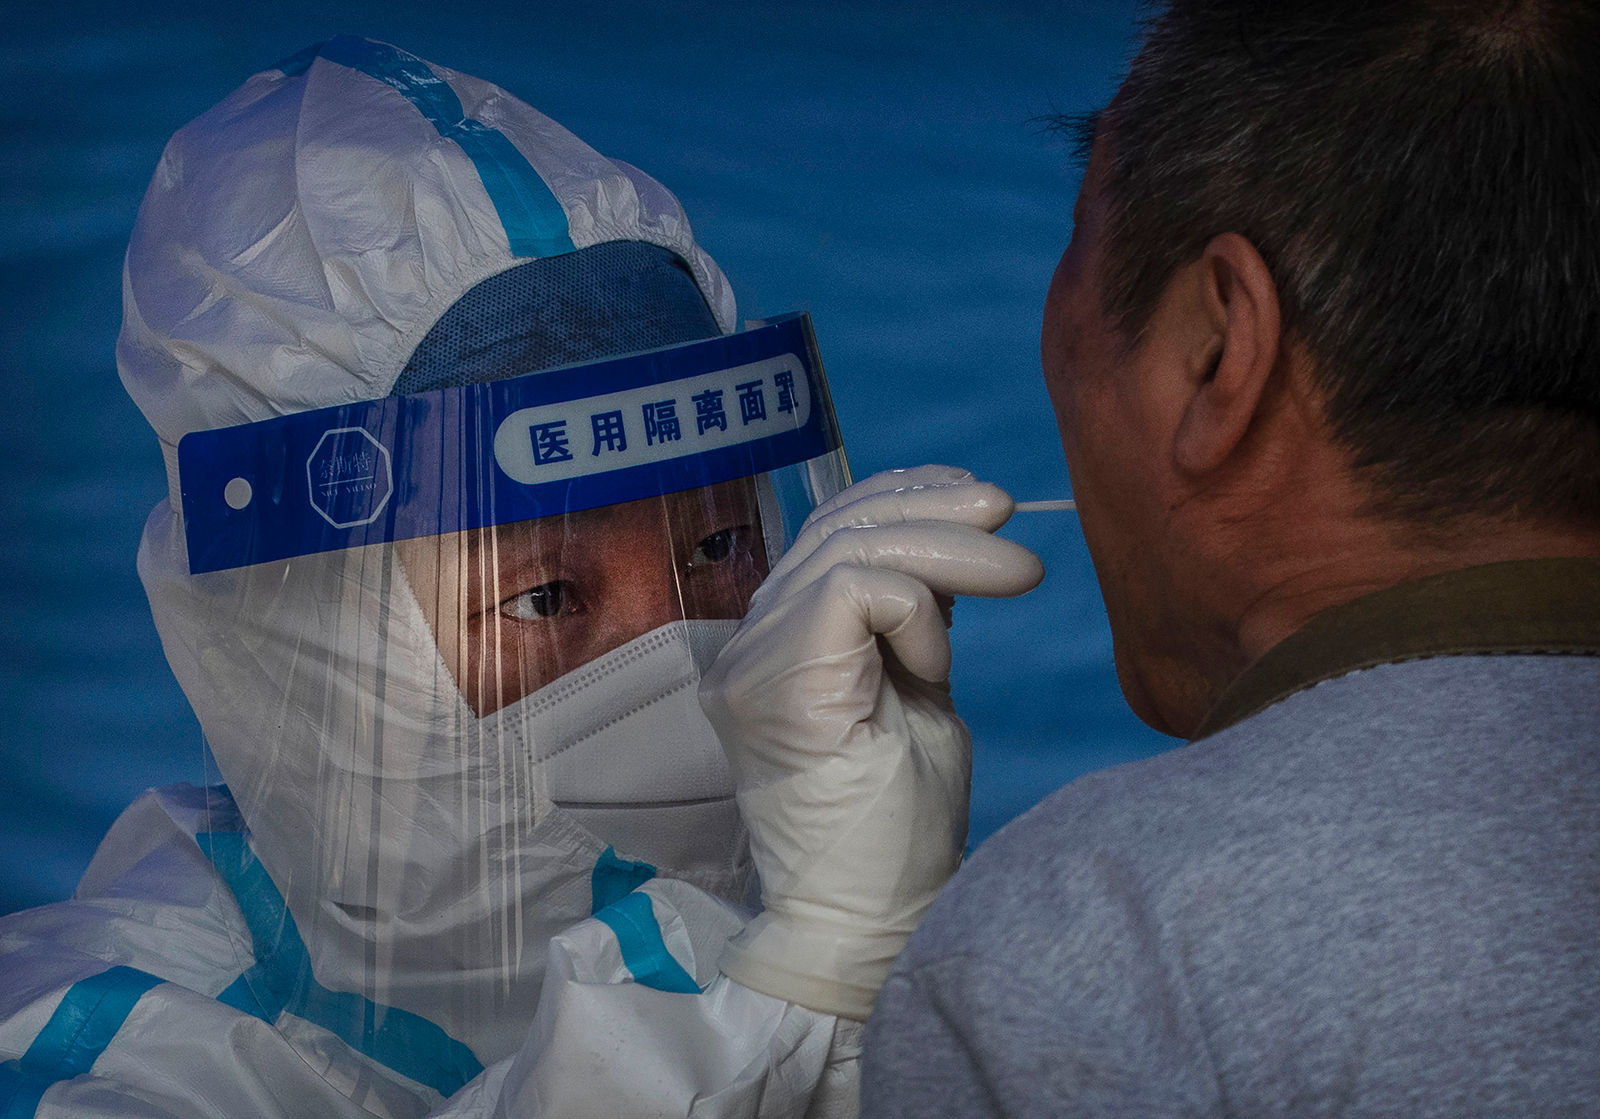 An epidemic control worker wears a protective suit as she performs a nucleic acid swab test for Covid-19 on a man at a government testing site on June 22, in Beijing, China.